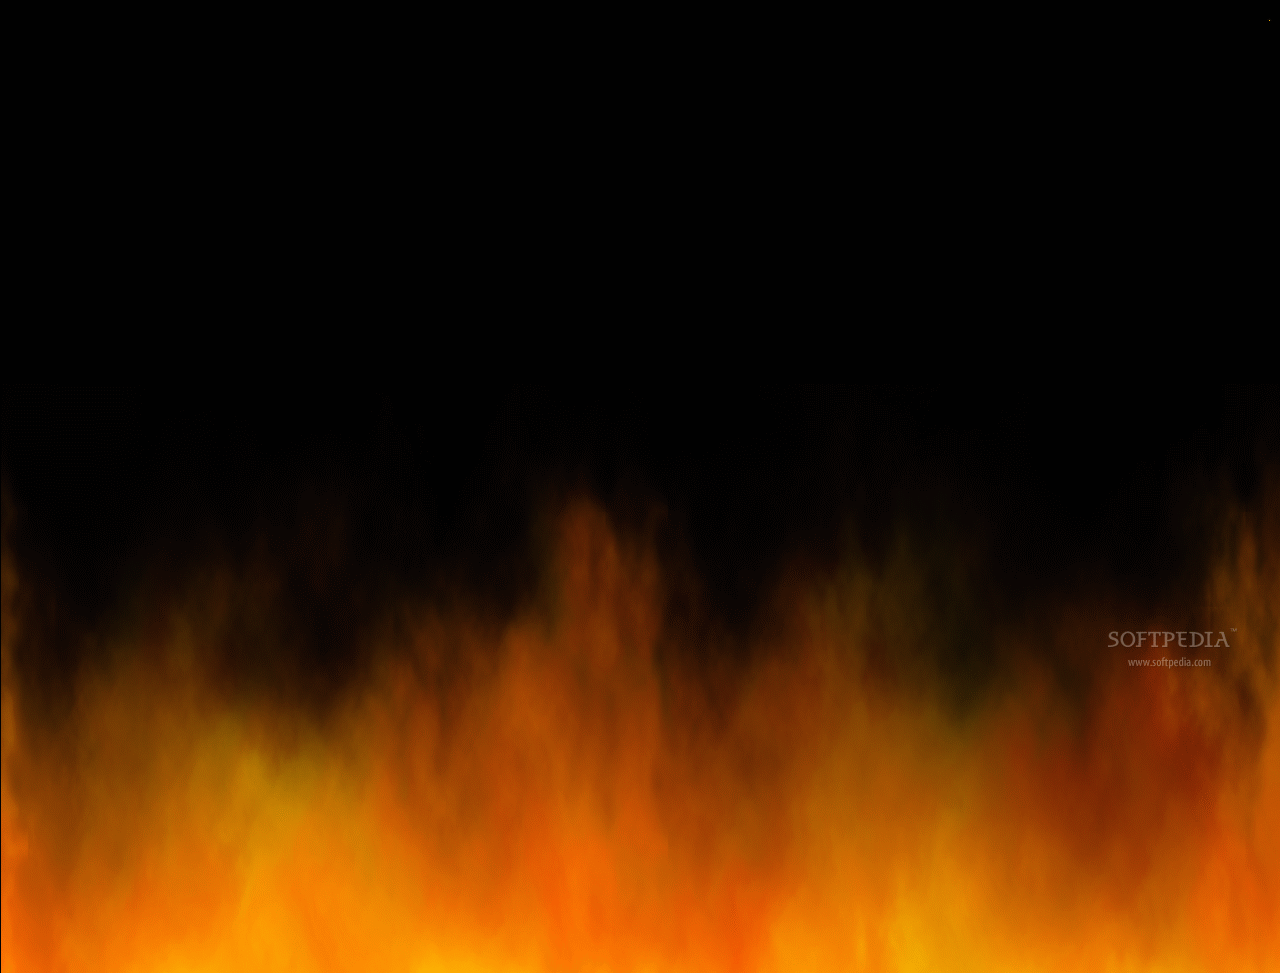 Wall of Fire Animated Wallpaper screenshot 1   This is how the 1280x973